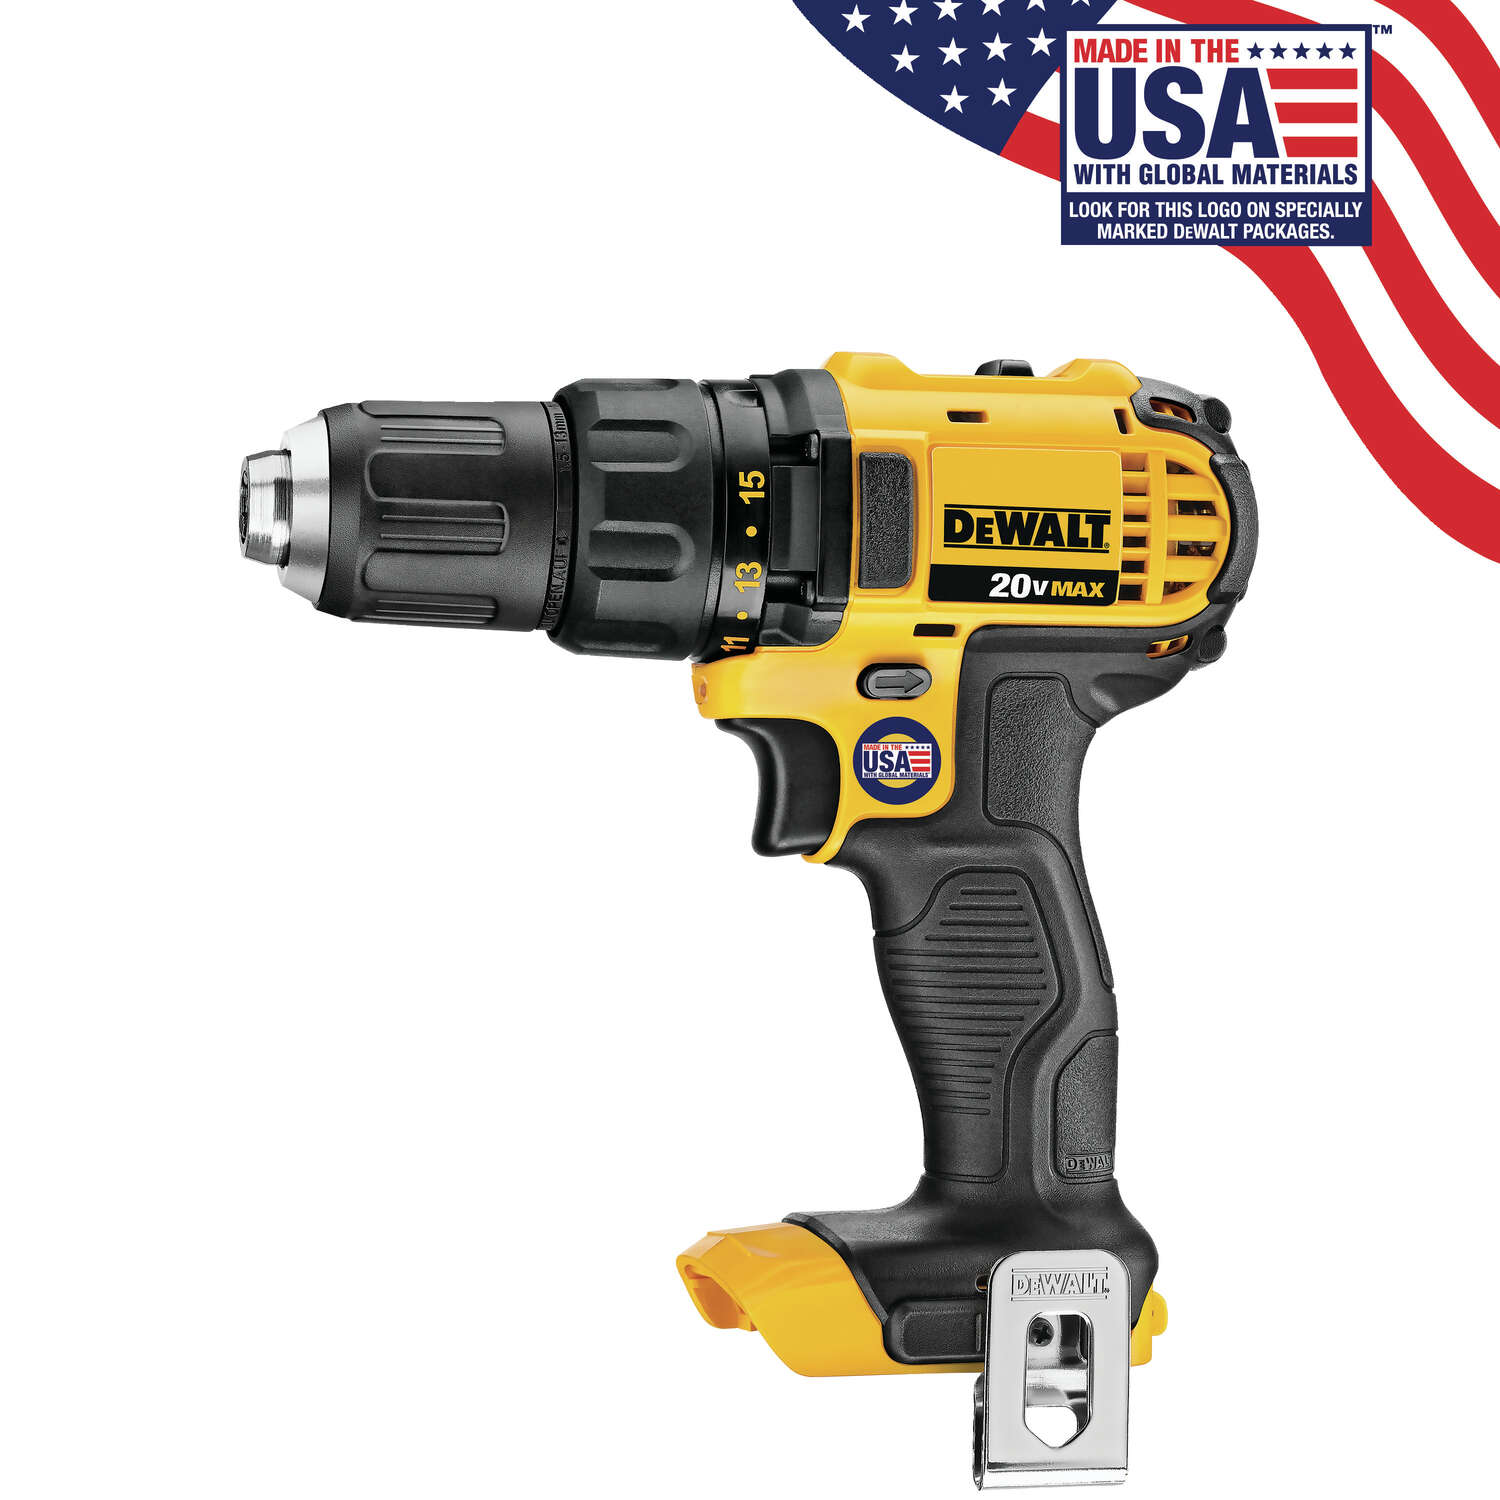 DeWalt  20 volt 1/2 in. Brushed  Cordless Compact Drill/Driver  Tool Only